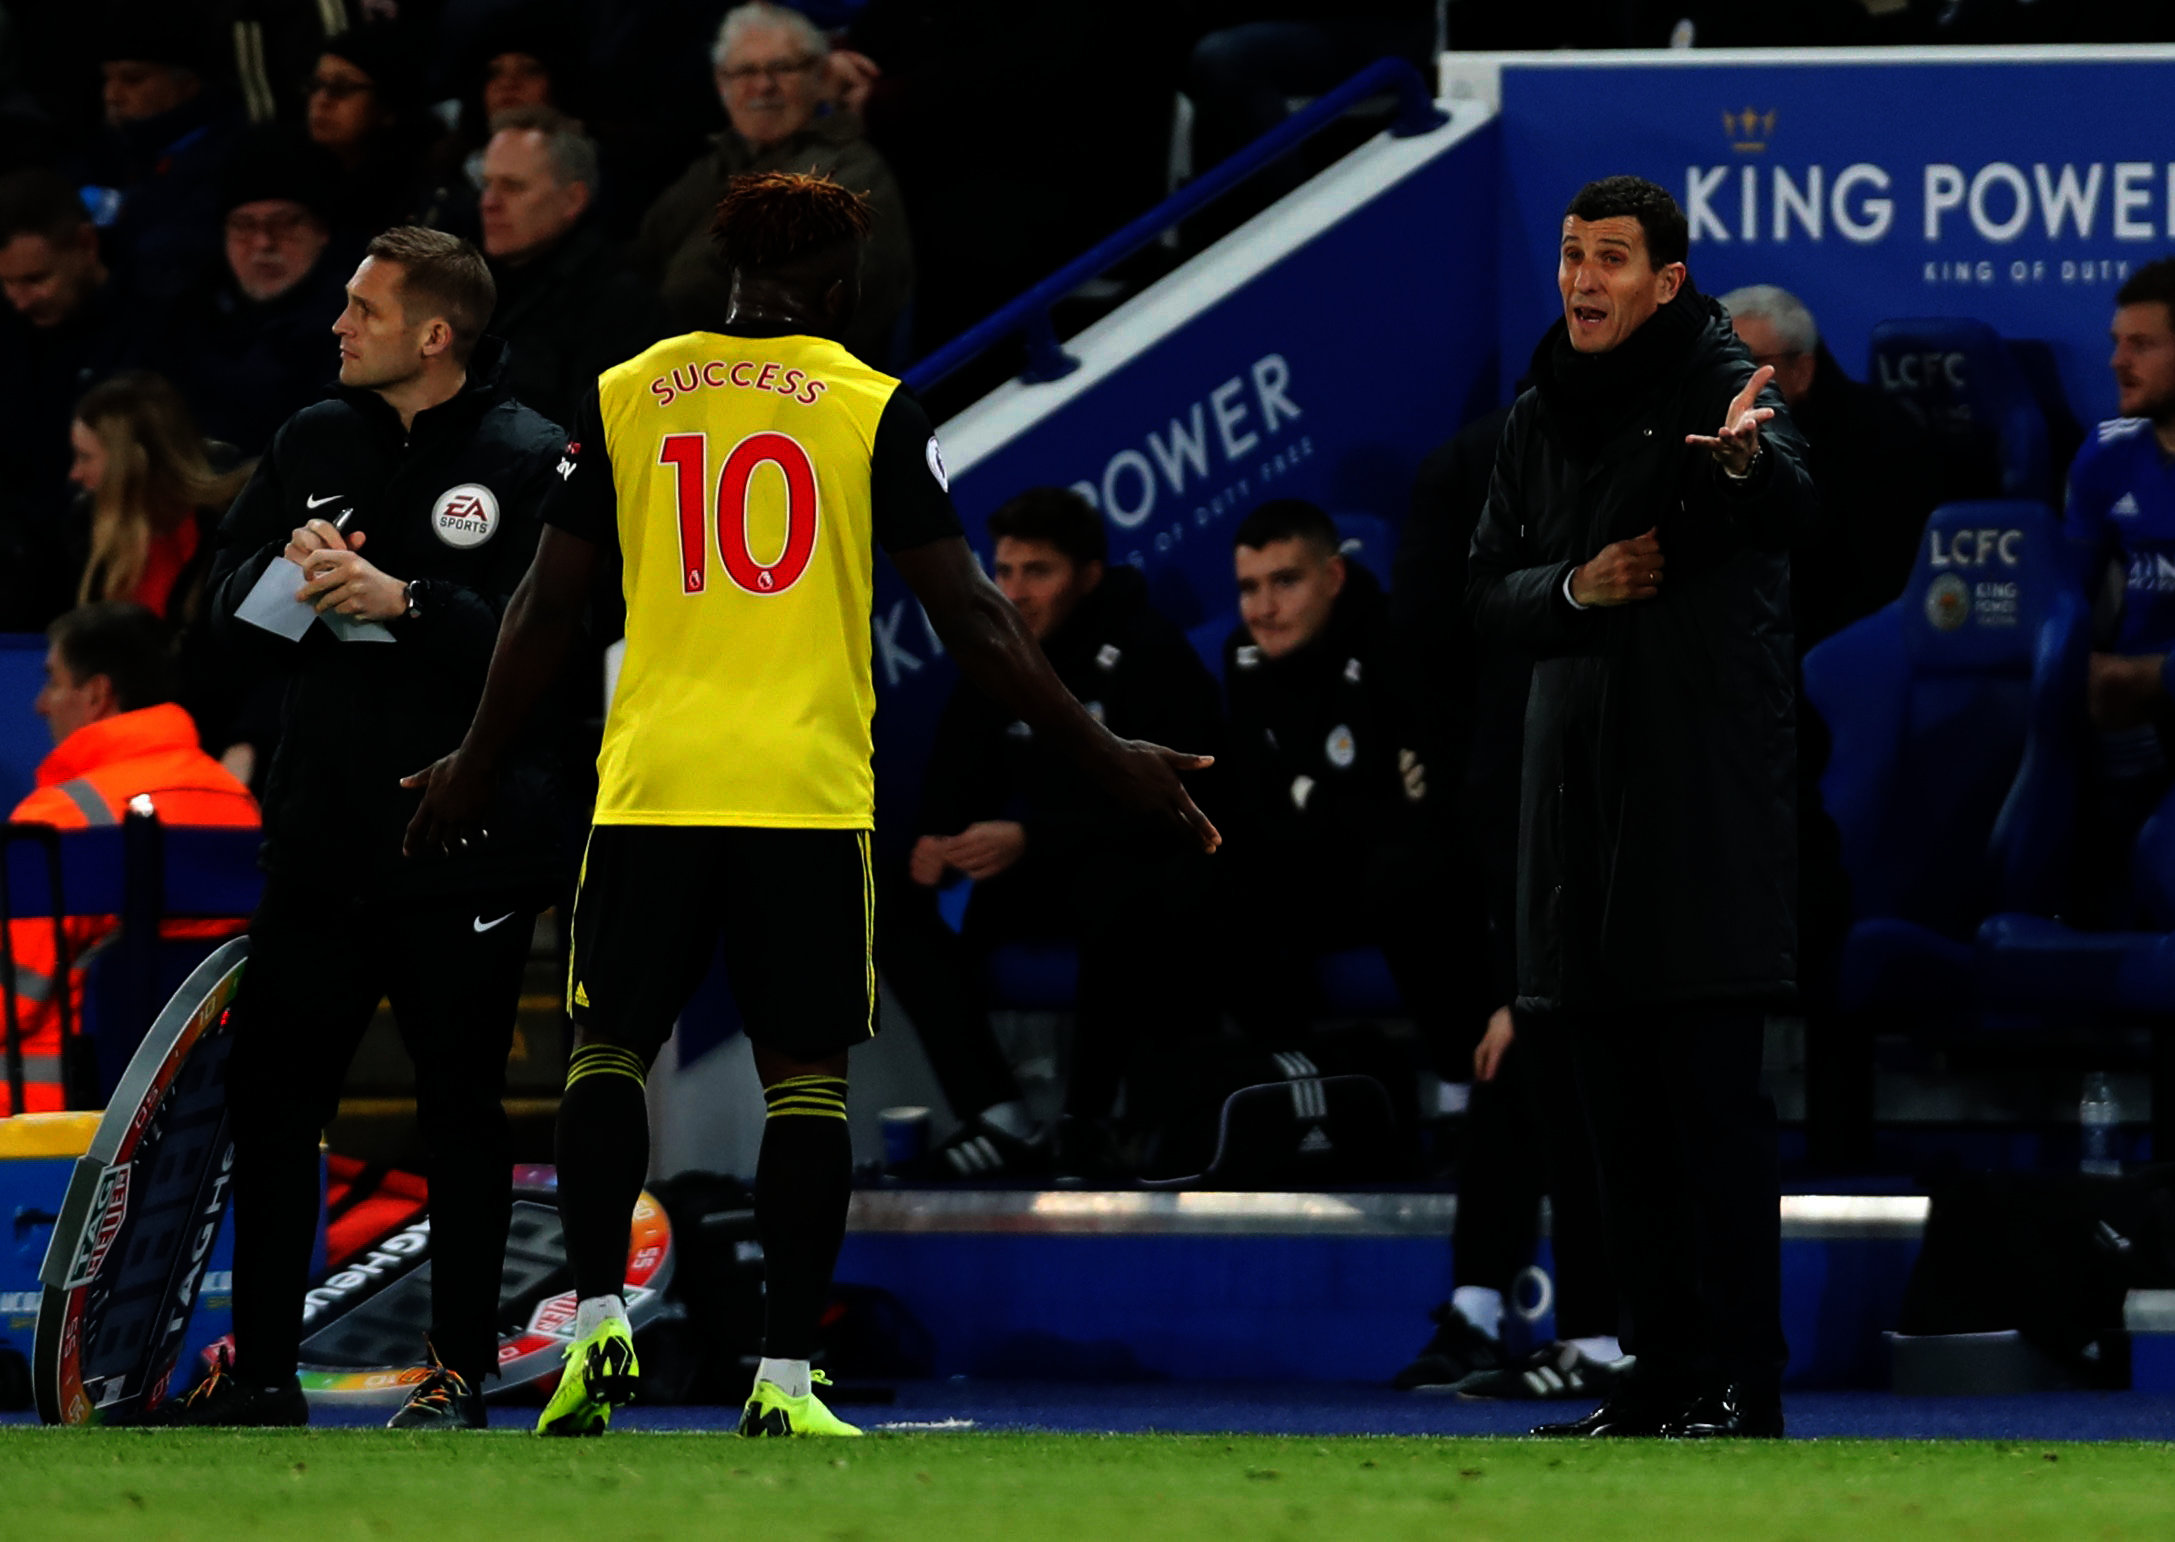 Javi Gracia wants Isaac Success to behave better after an incident with a ballboy at Wembley. Picture: Action Images